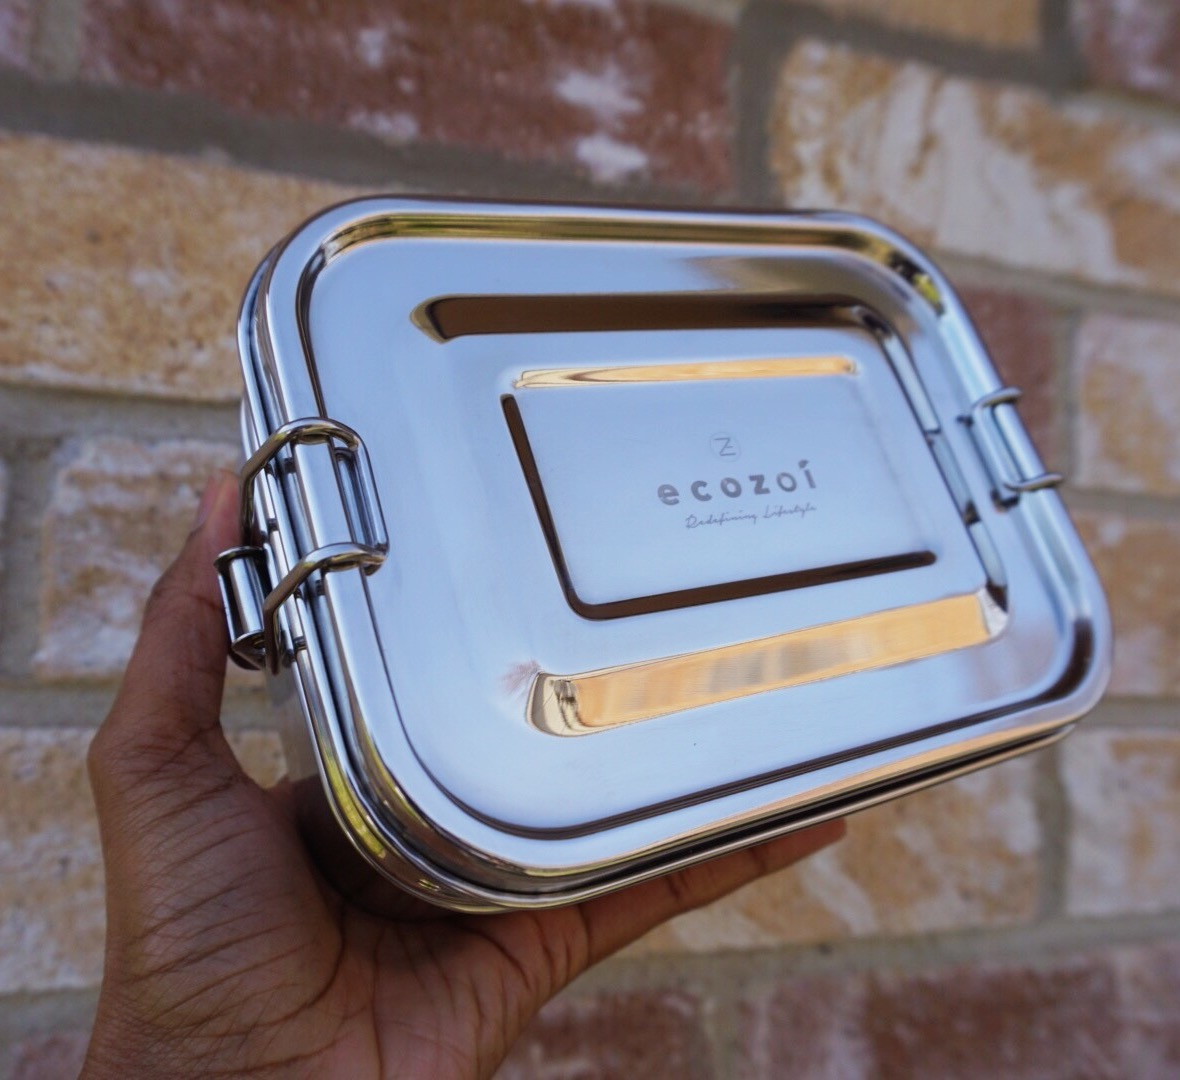 Ecozoi stainless steel zero waste bento box lunch container